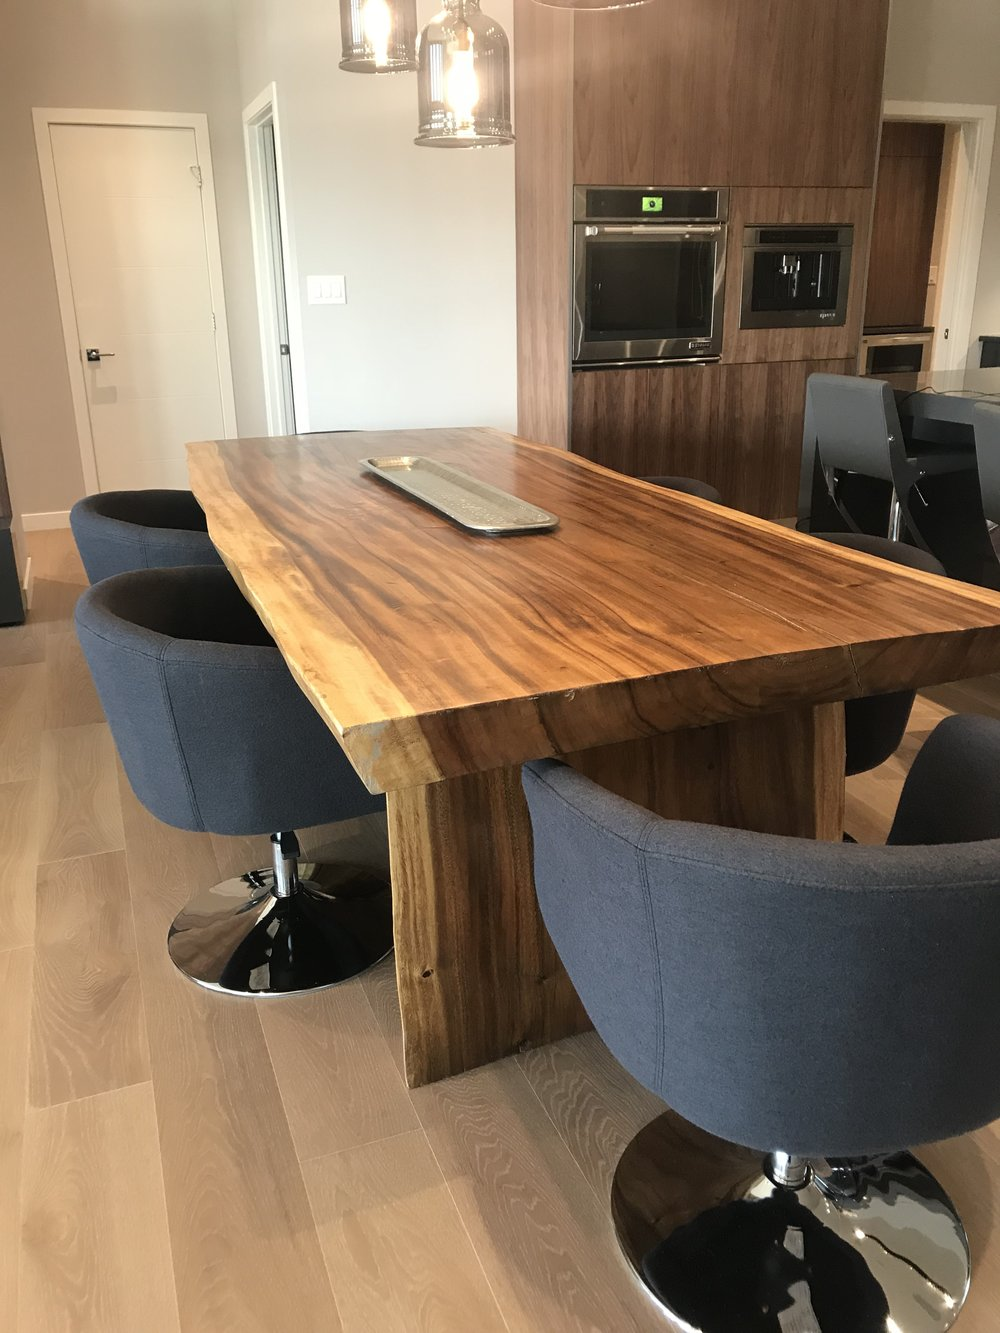 Huntington homes show home furniture. parade of homes. blue moon furniture. majestic live edge dining table..JPG